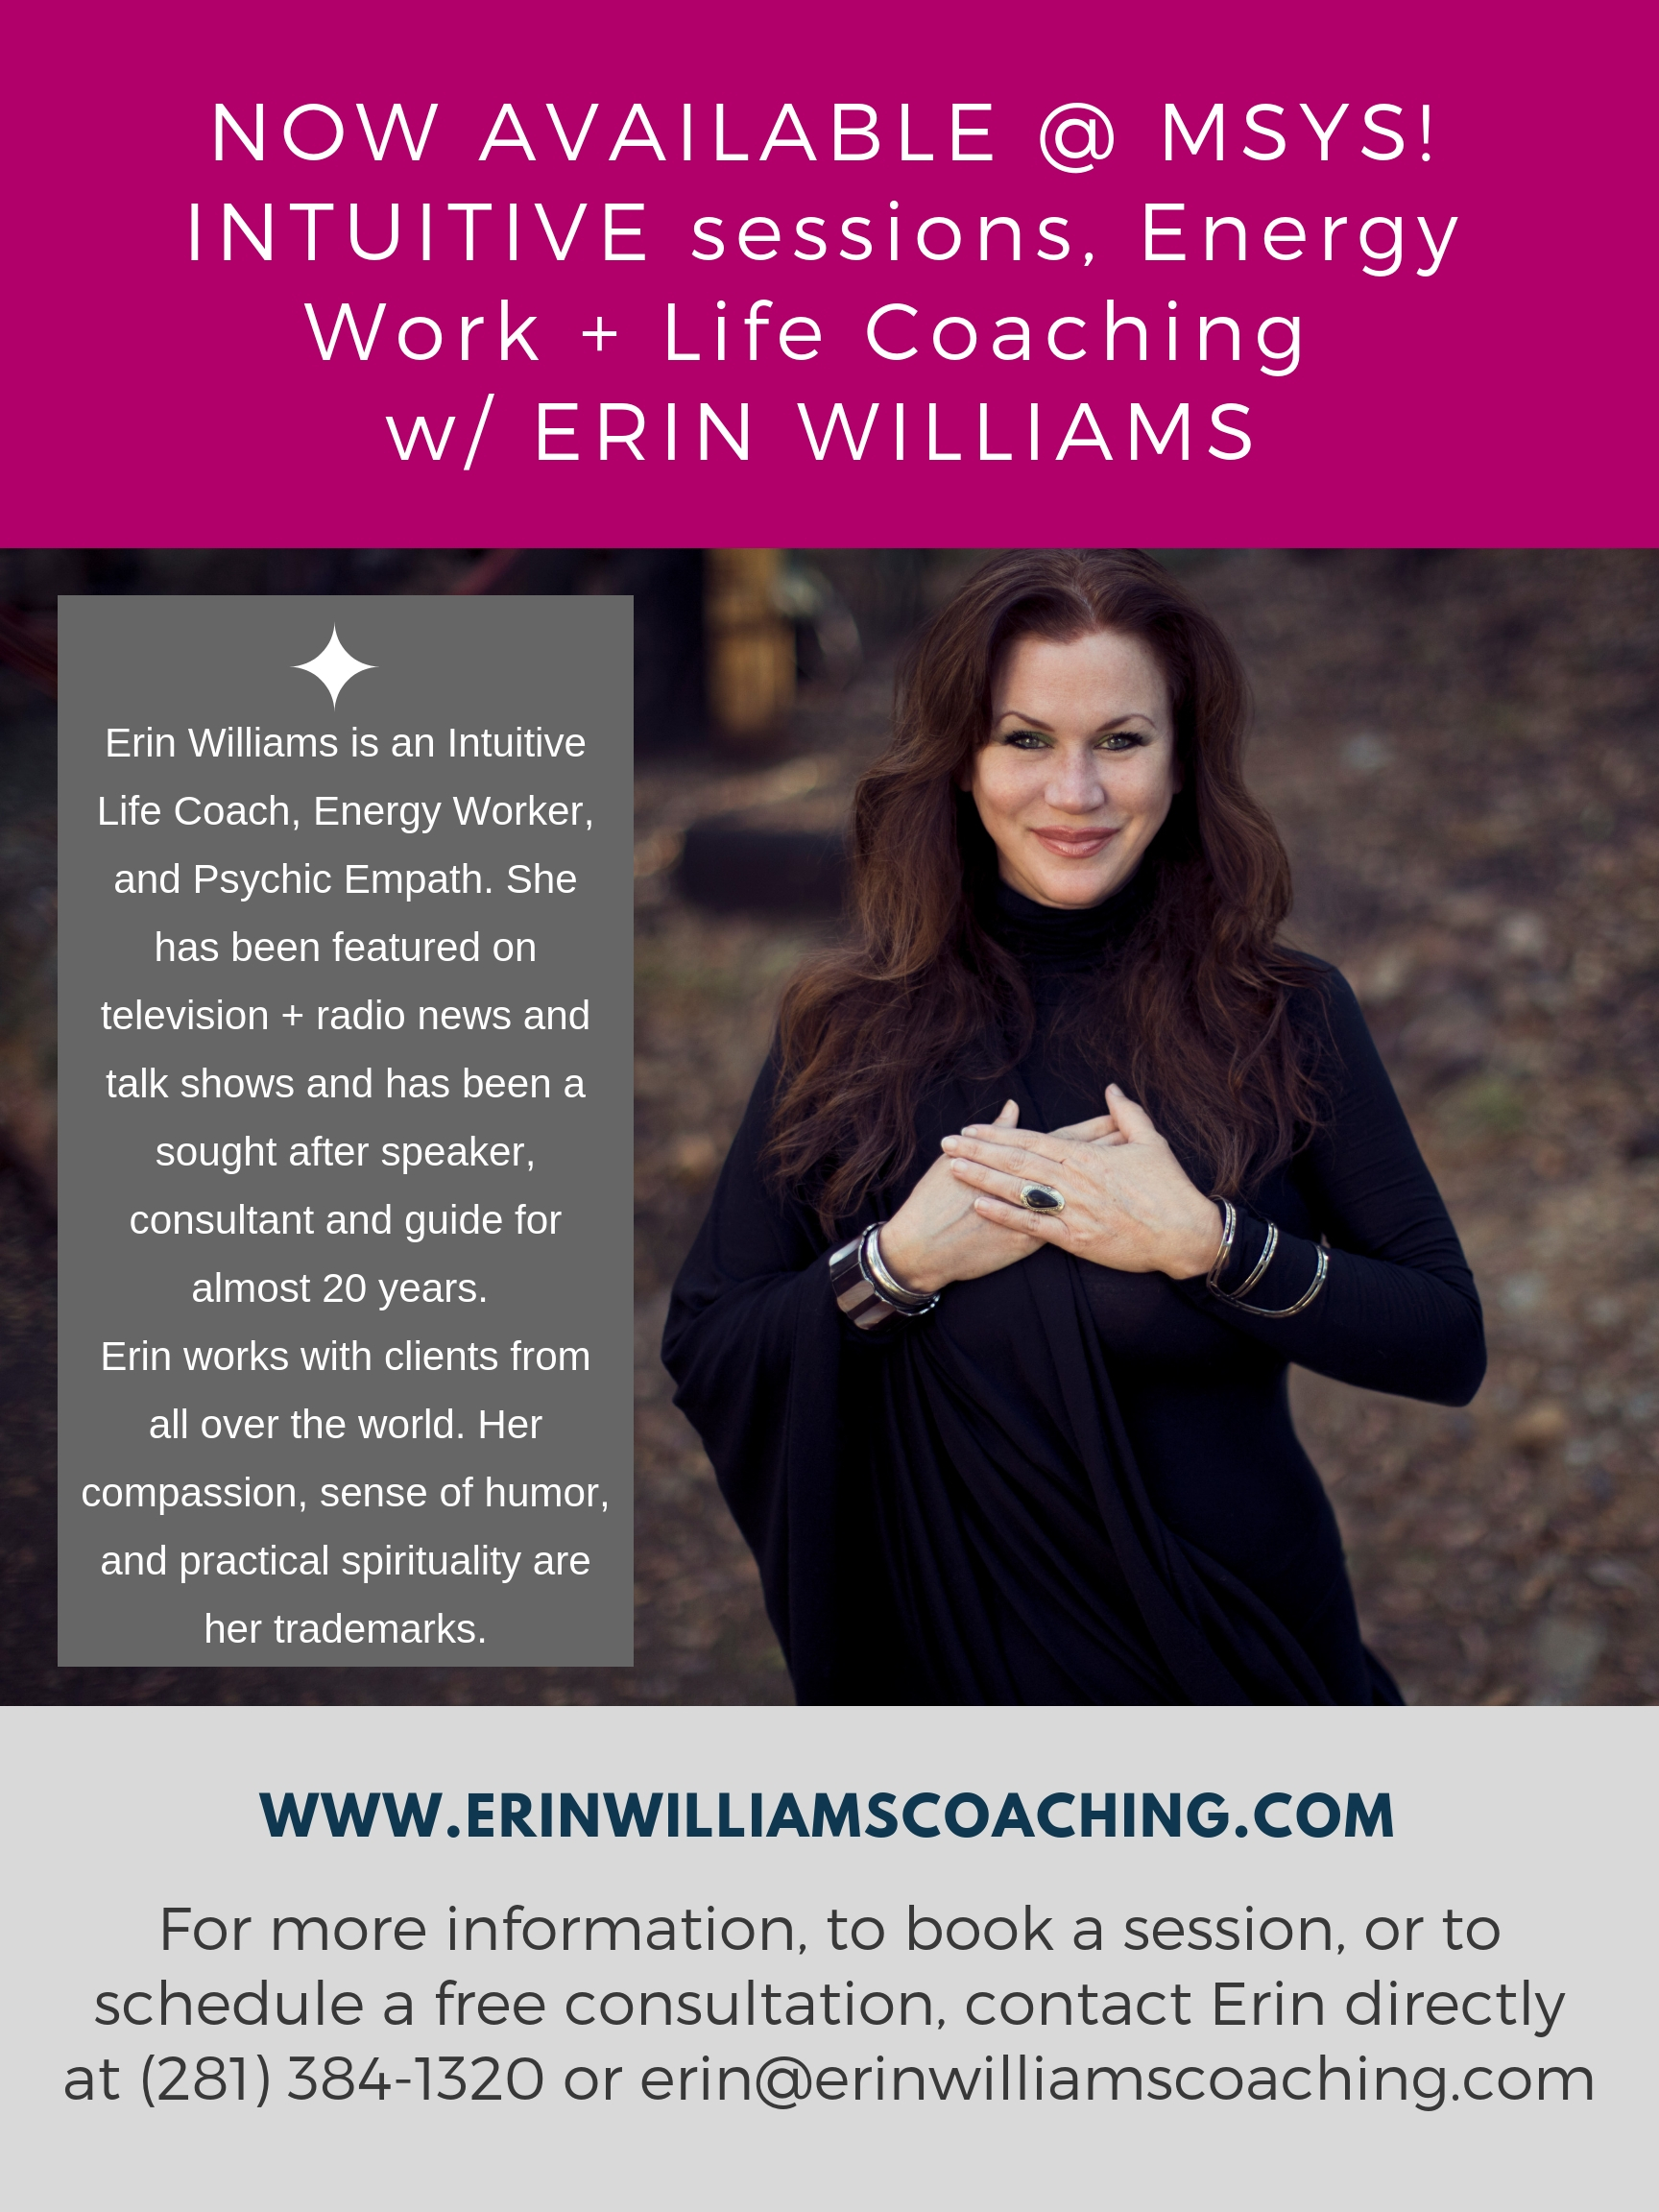 MAY/2019,ERIN WILLIAMS, In Residency, and available for in person work at MAIN STREET YOGA STUDIO - 802 Main Street Rockport, Texas 78382